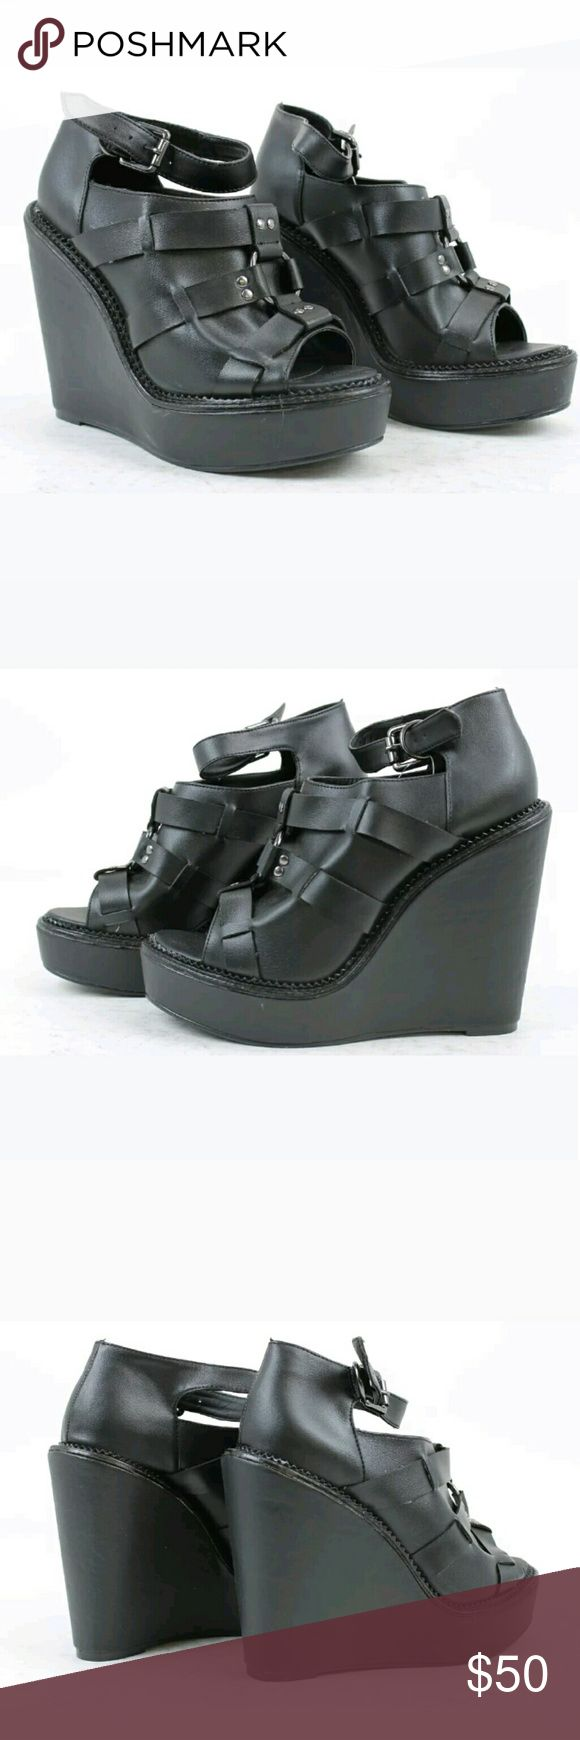 New Deena & Ozzy harness wedge New w/out box Leather Deena & Ozzy peep toe wedge,listed as UNIF for exposure.  Too small, ordered HOPING they ran big because they are impossible to find,  but unfortunately they didn't fit (I'm an 8.5). Hate to sell. UNIF Shoes Wedges